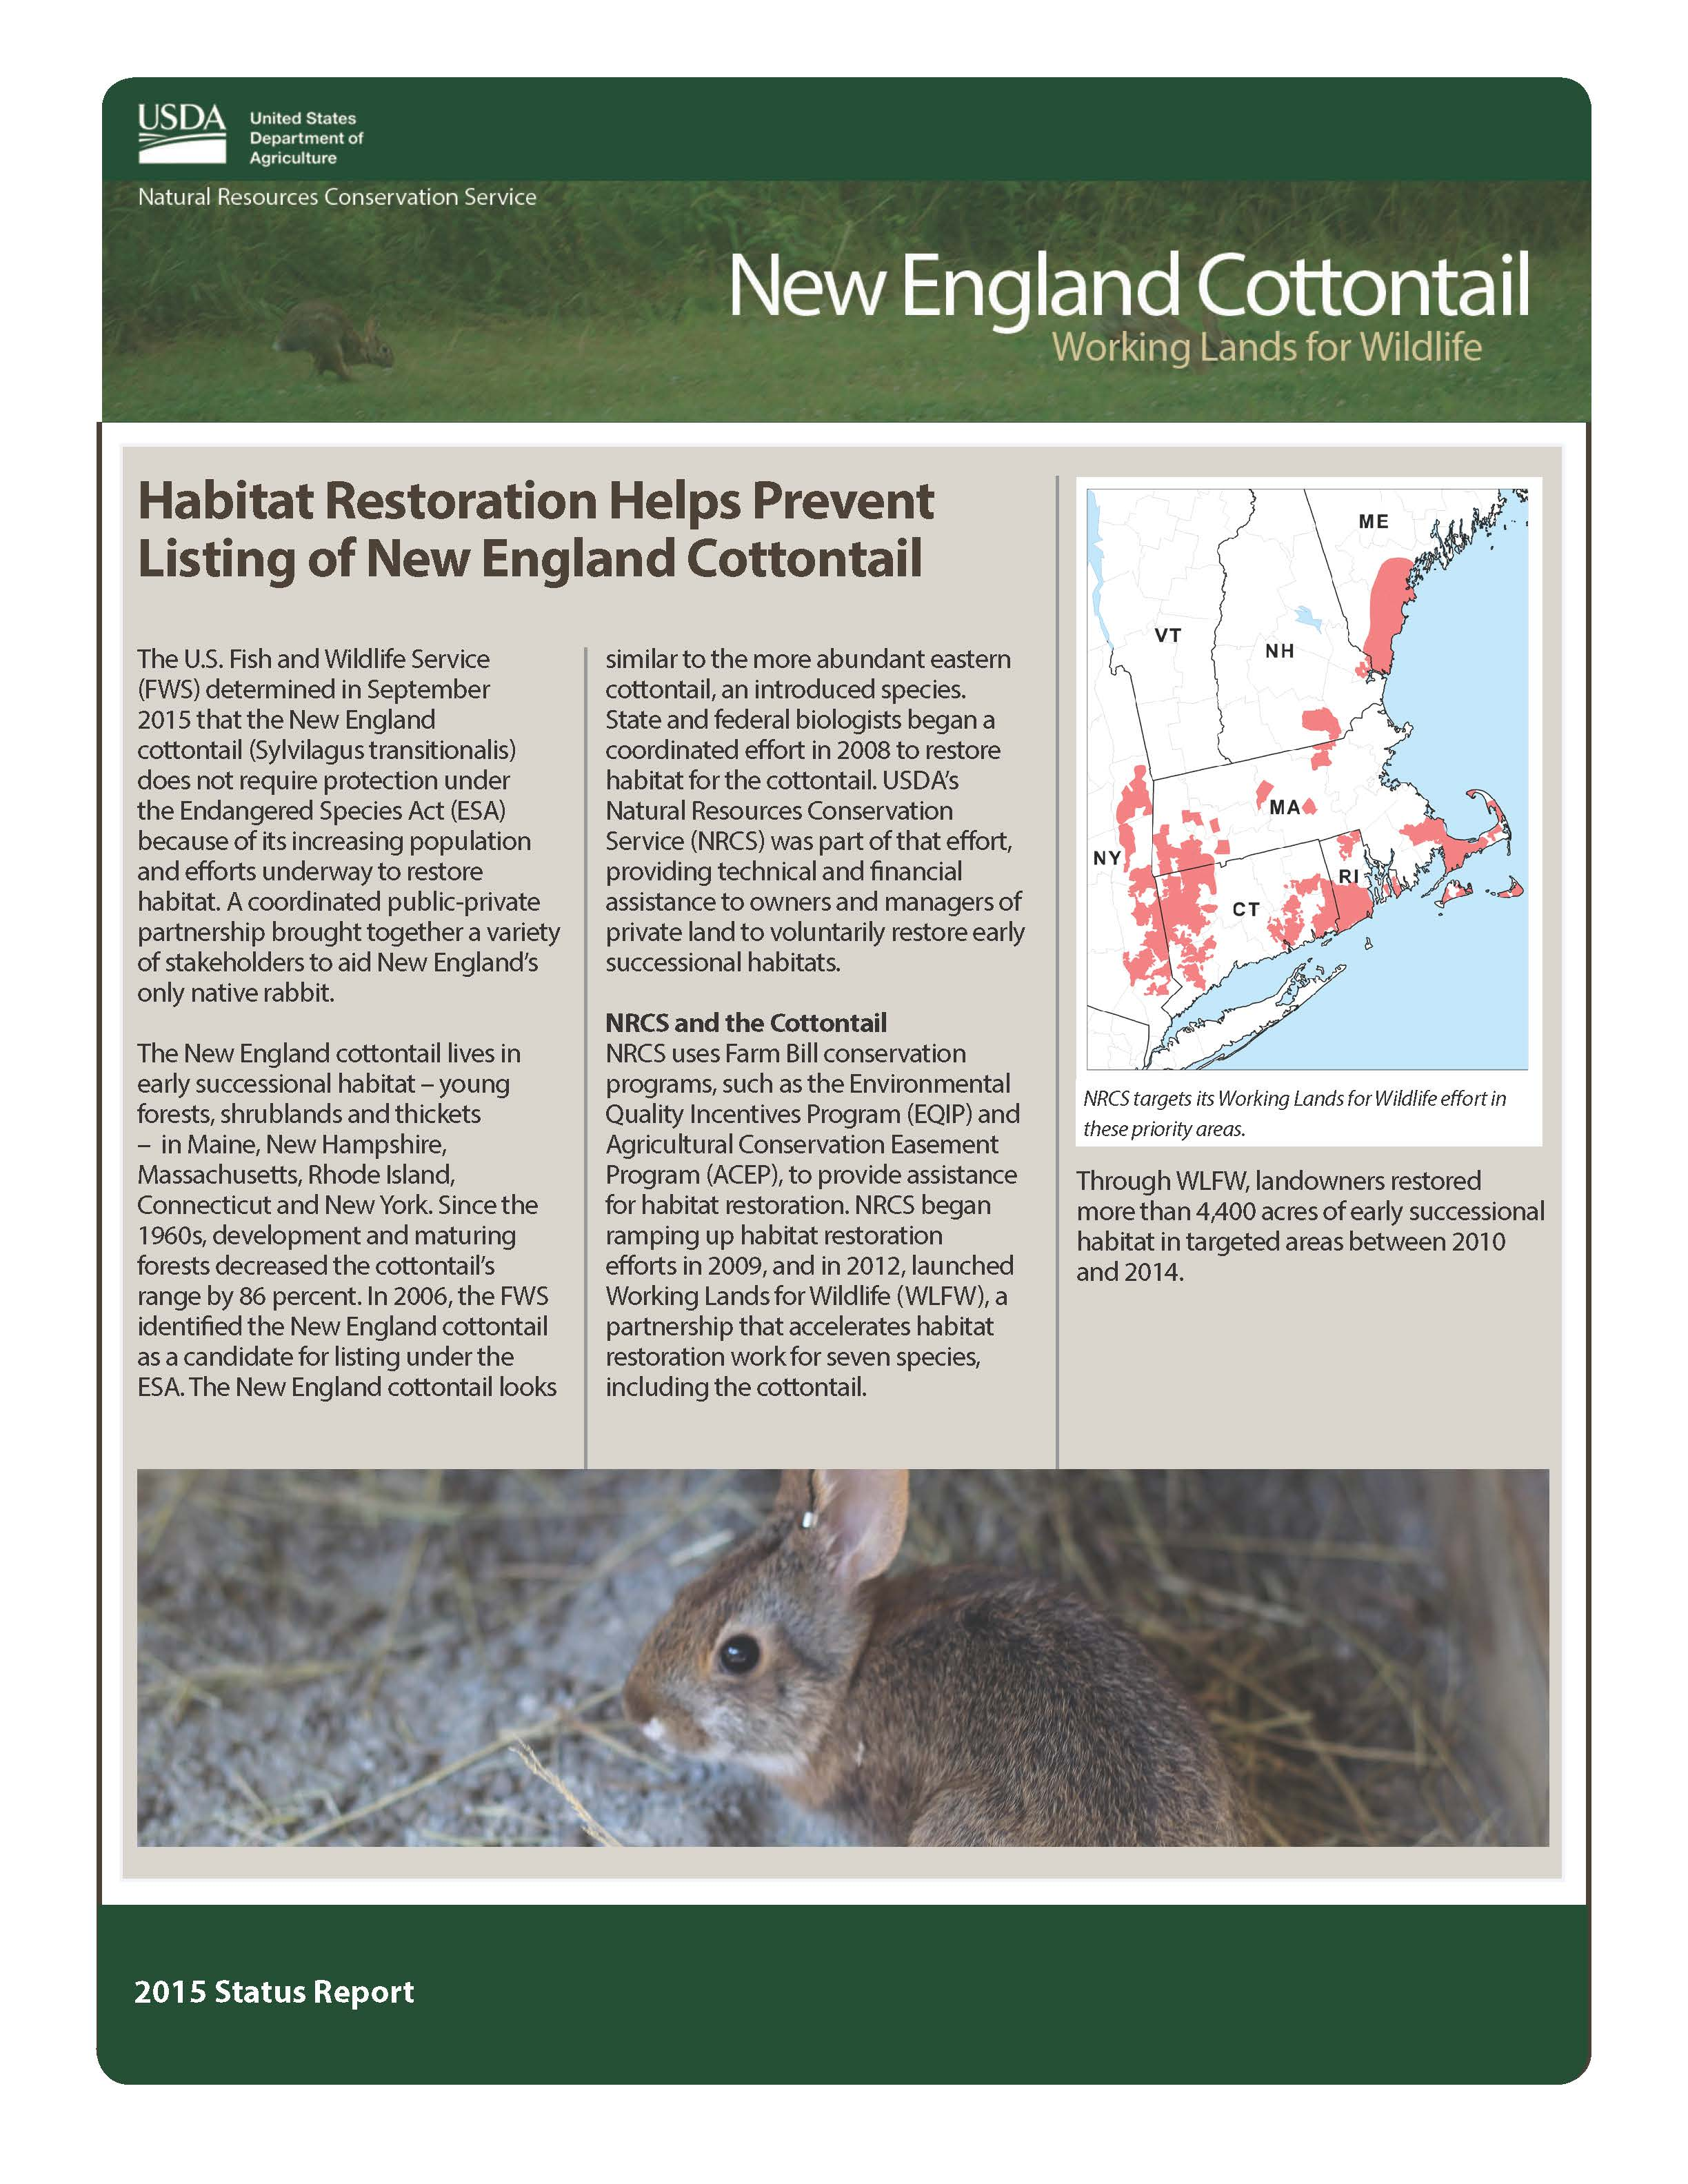 New England Cottontail Status Report